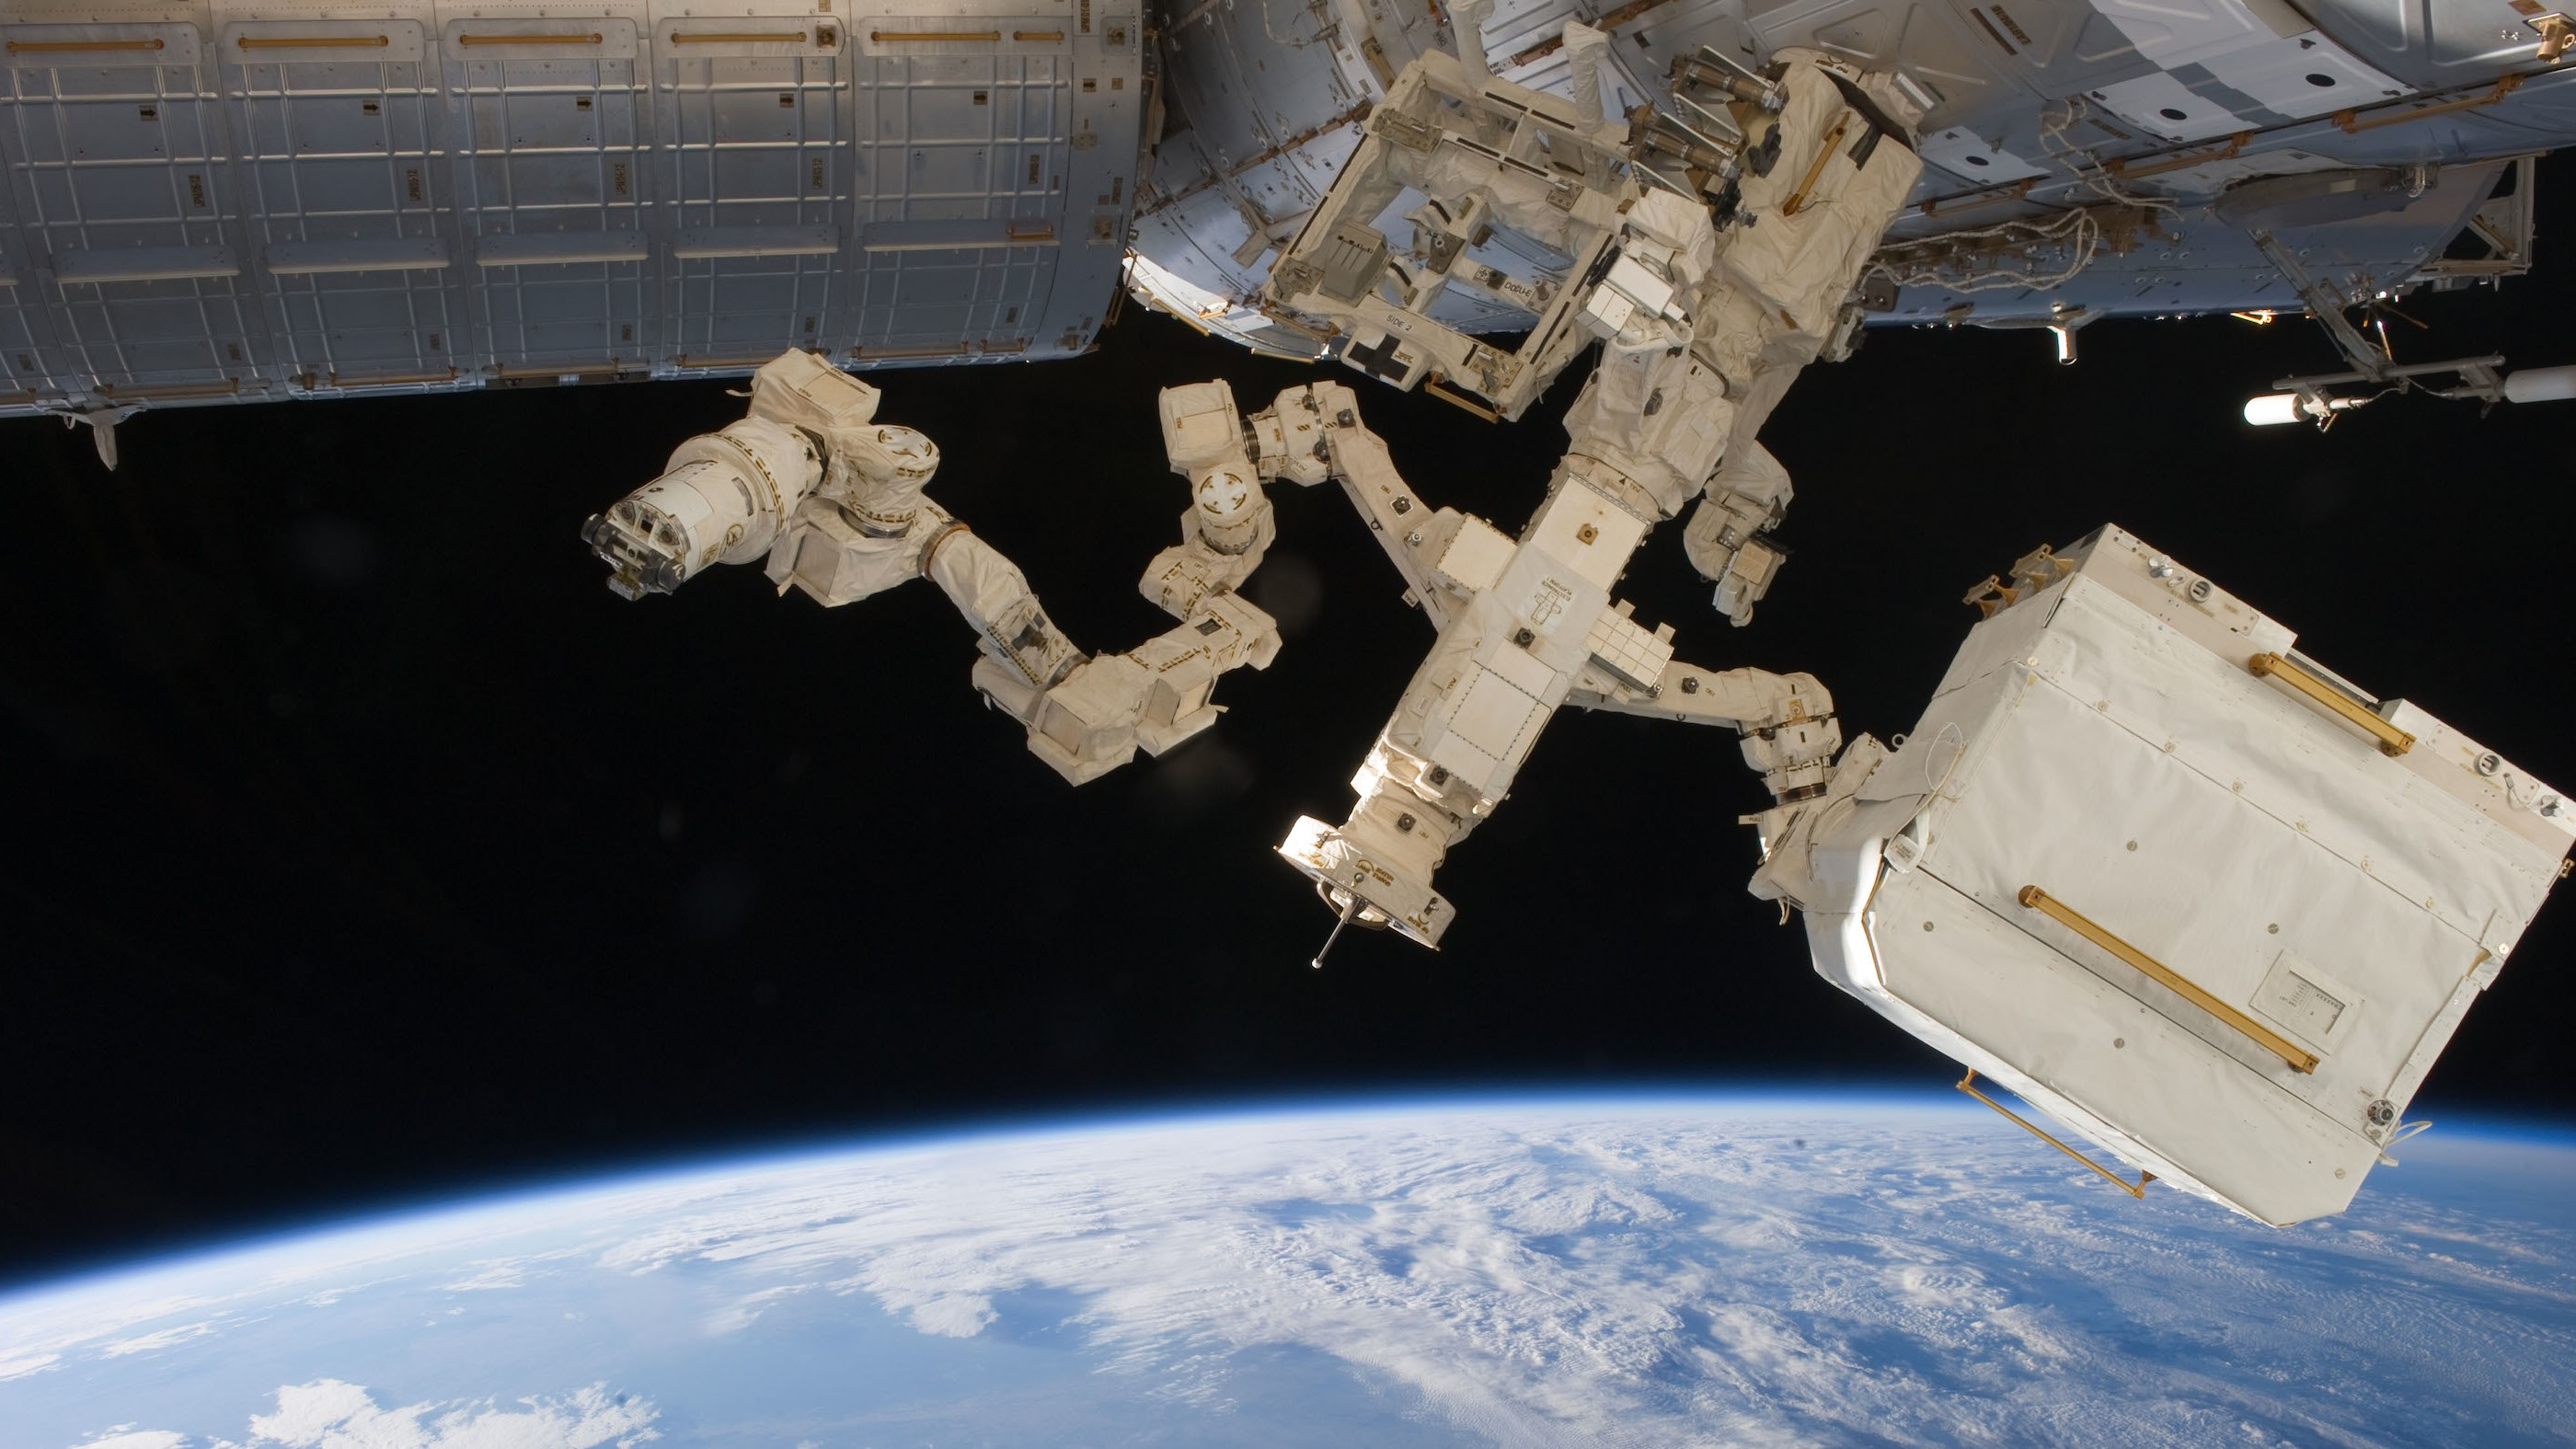 The Latest Job for Canada's Robotic Space Mechanic? Repairing Itself